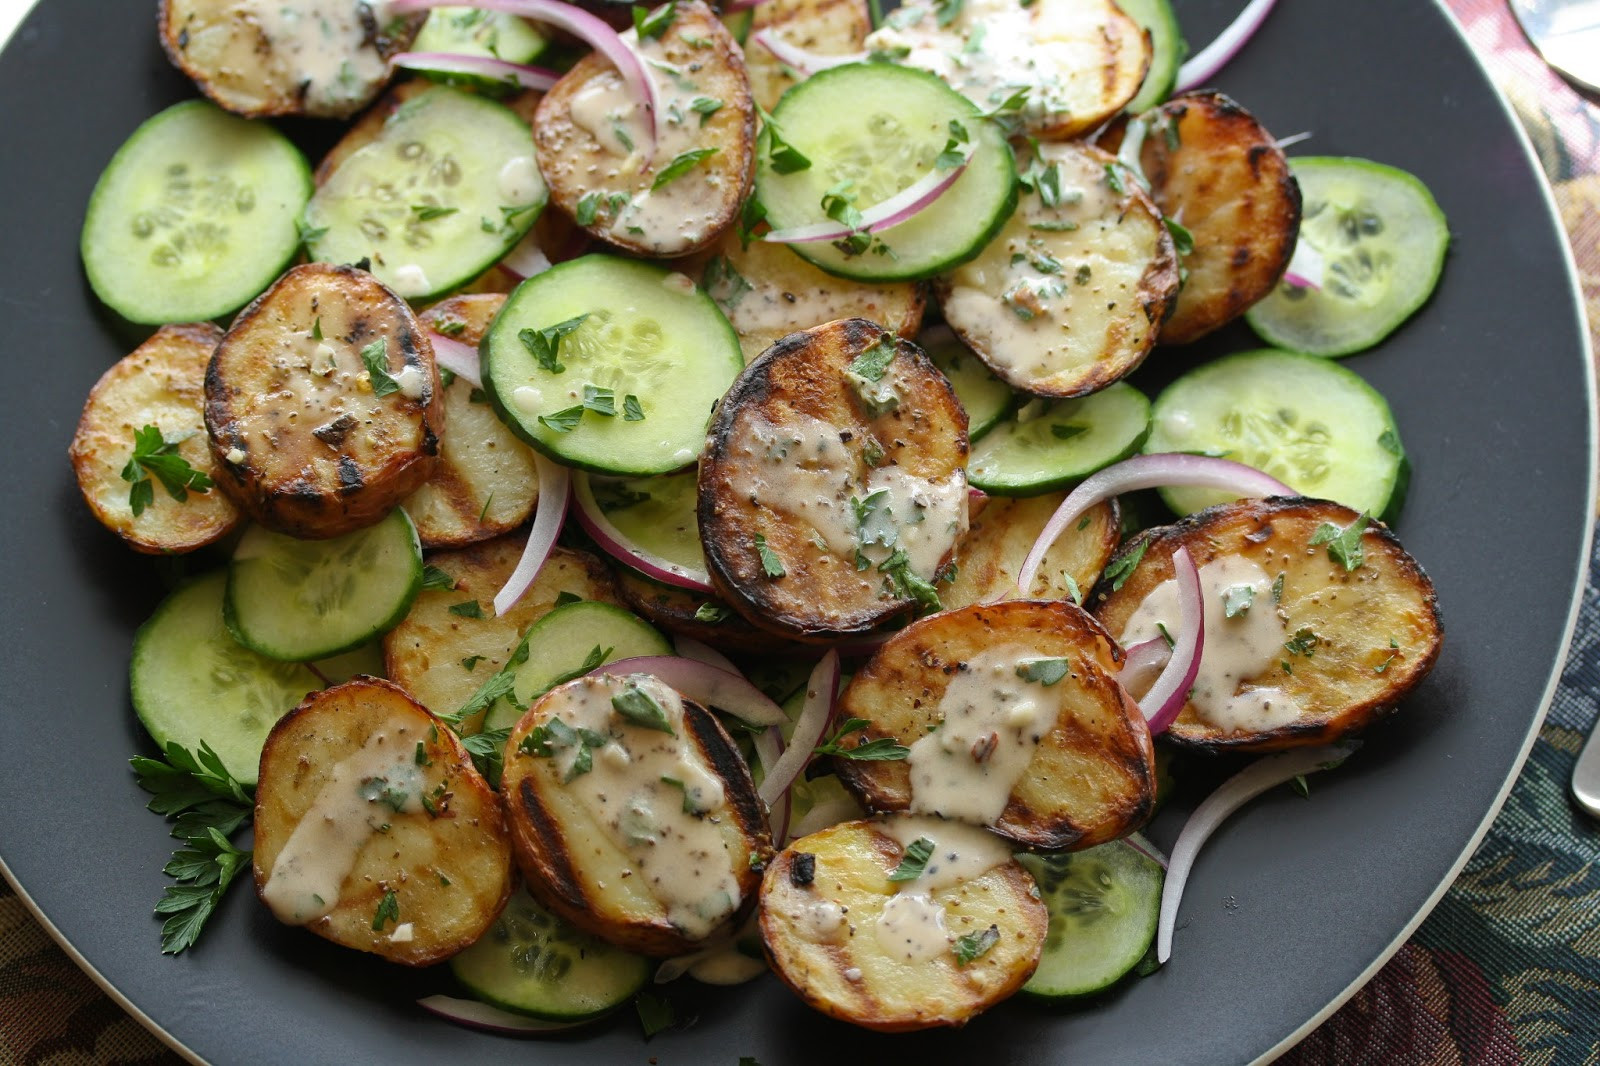 Grilled Potato Salad  Grilled Potato Salad with Cucumbers and Fresh Herbs from